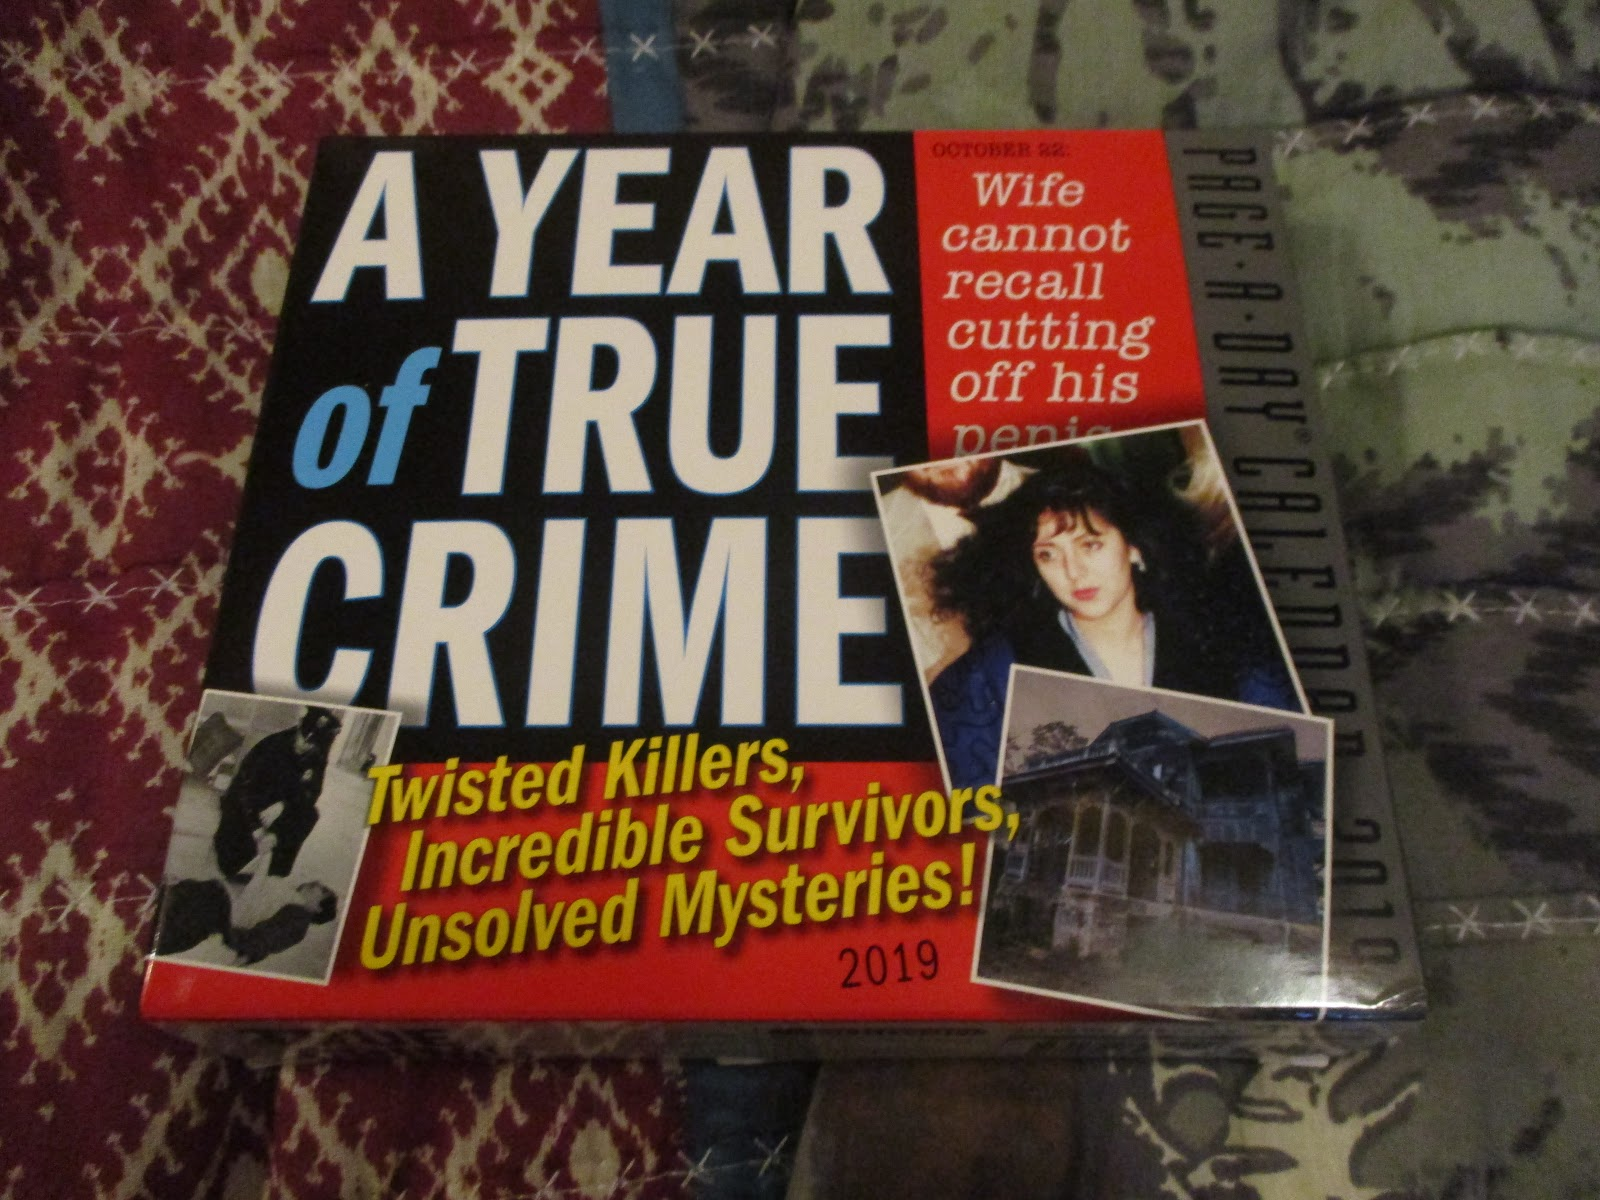 a year of true crime 2019 page a day calendar from workman publishing tales of true crime tantalize sparking morbid curiosity and intrigue